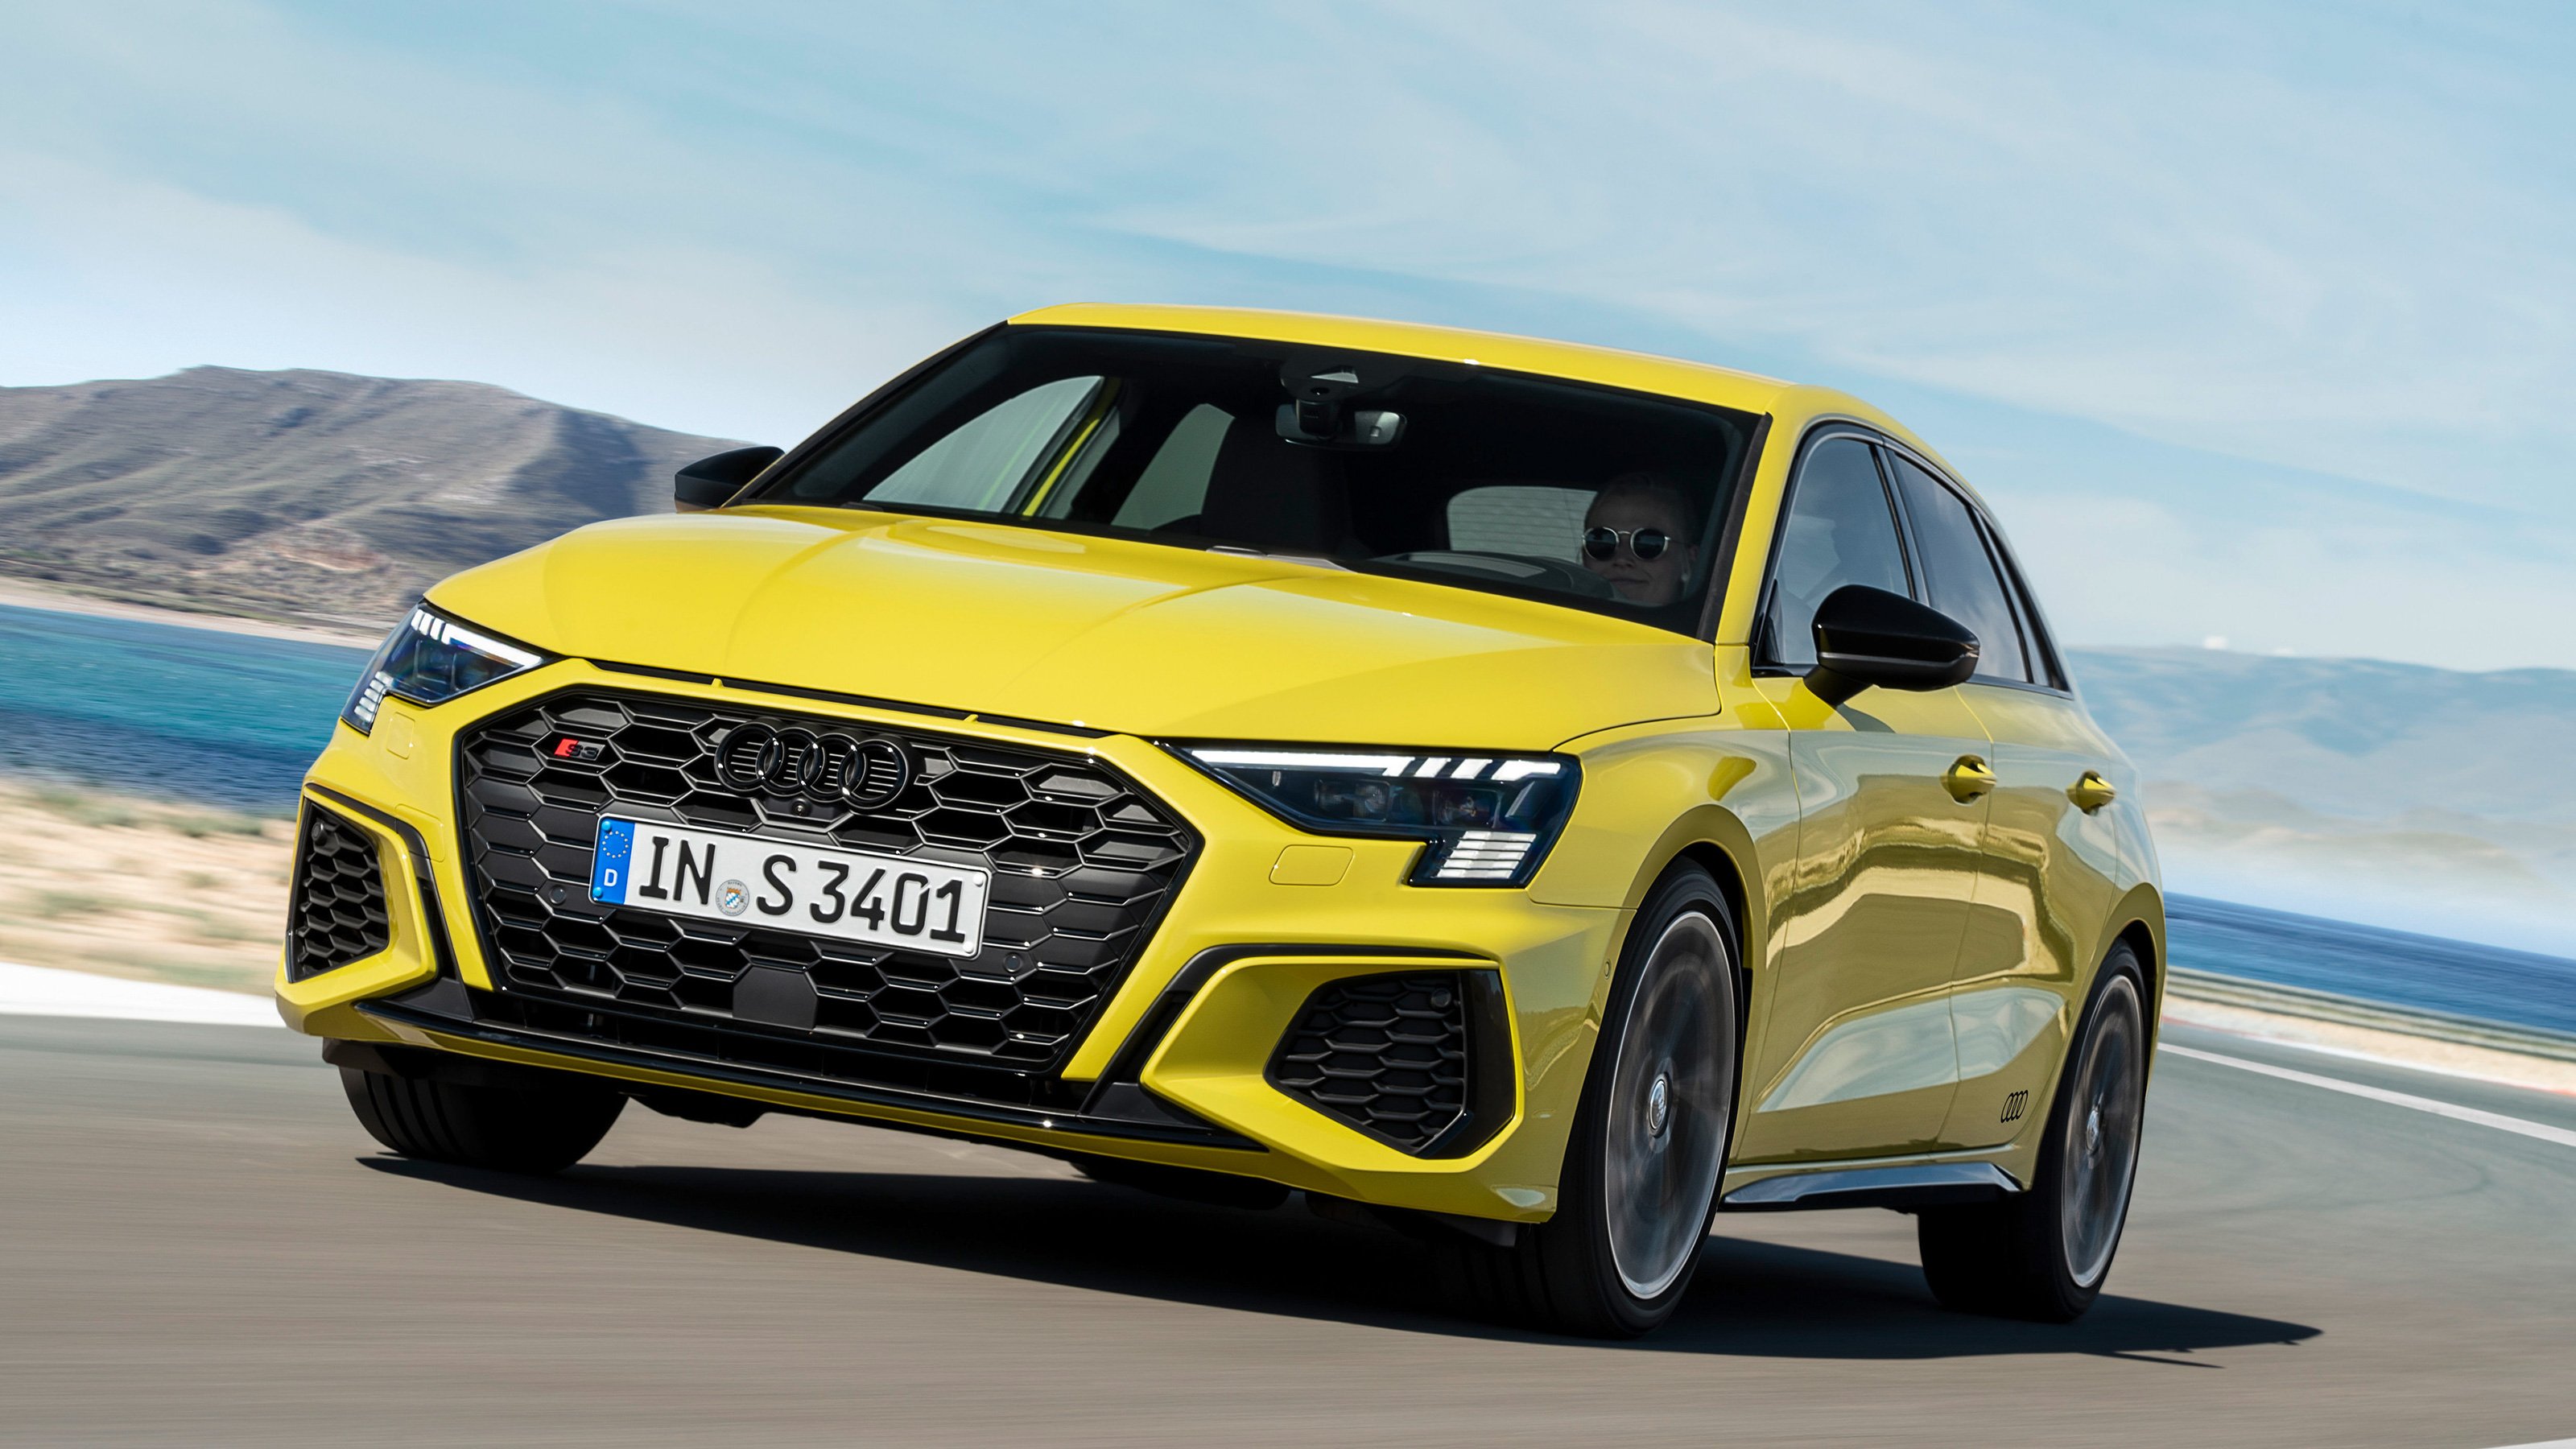 New 2020 Audi S3 Sportback Blasts In With 306bhp Auto Express